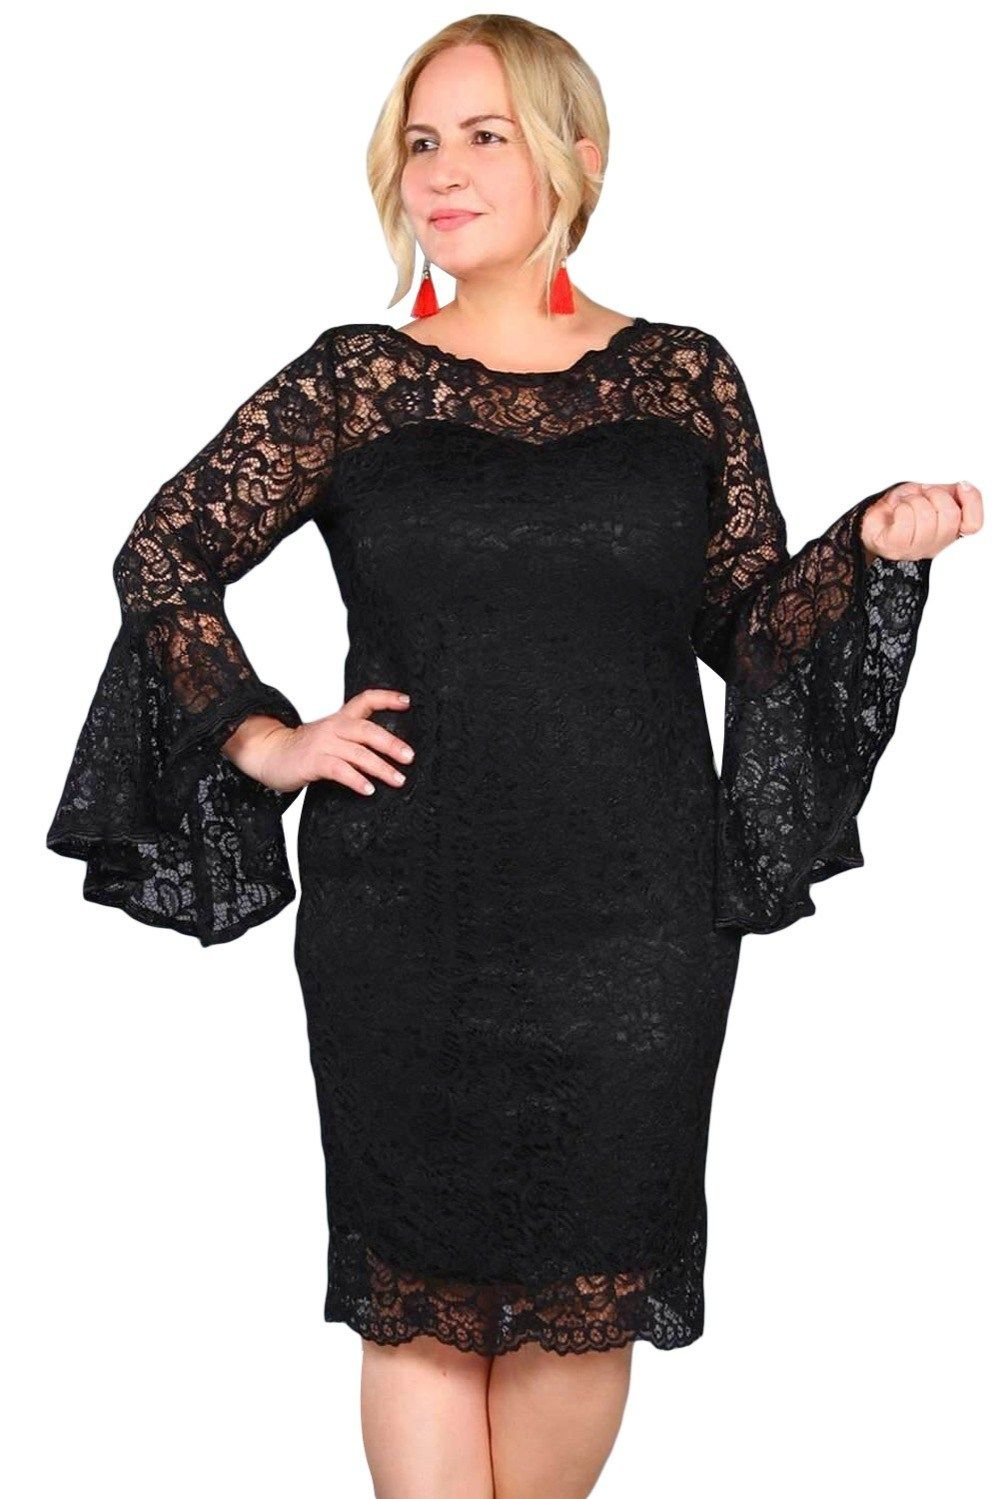 8f8dad31a65 Gosopin Plus Size Lace Dress Flared Sleeve 4xl Women Dress Elegant Midi  Autumn Spring Sexy Party Dresses Vestidos Mujer LC610501 free shipping  worldwide